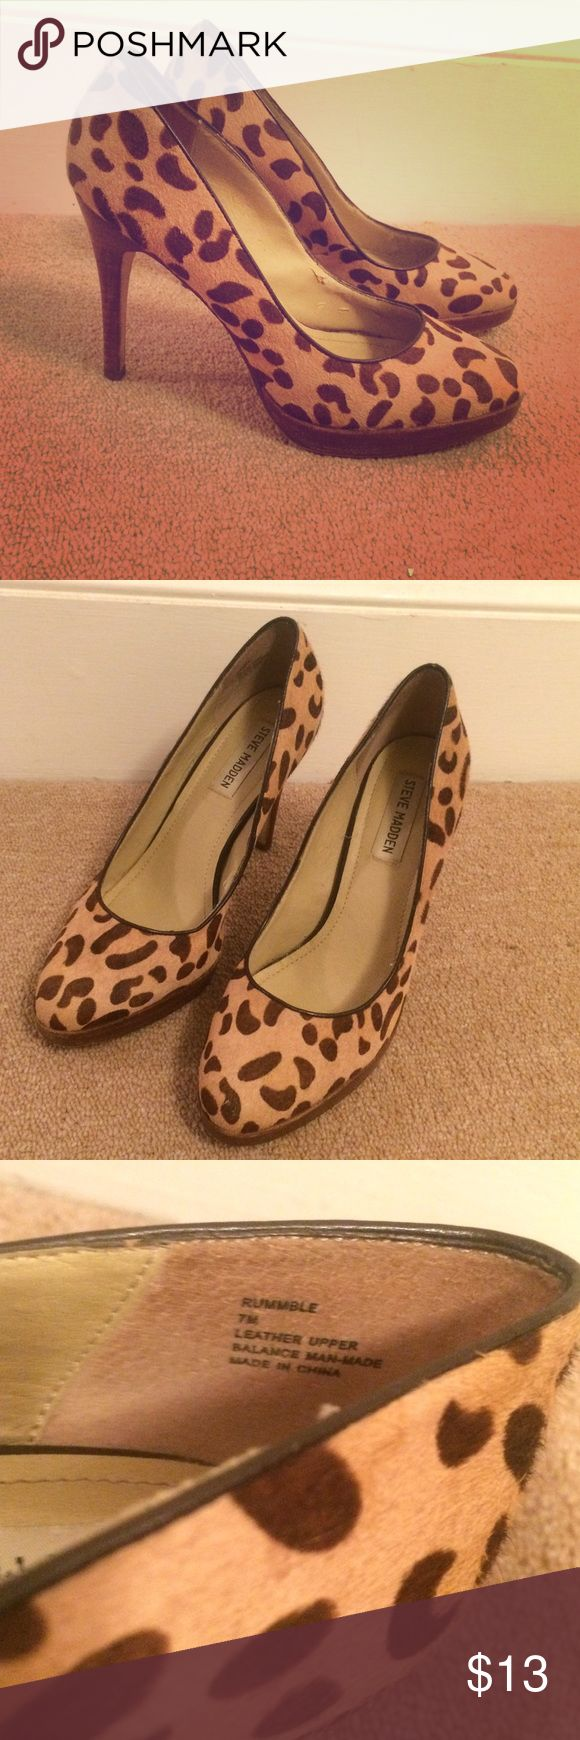 Steve Madden Leopard Print Pumps Size 7 Steve Madden Calf-hair Leopard Print Pumps Size 7, gently worn - in great condition. Very comfortable! Steve Madden Shoes Heels